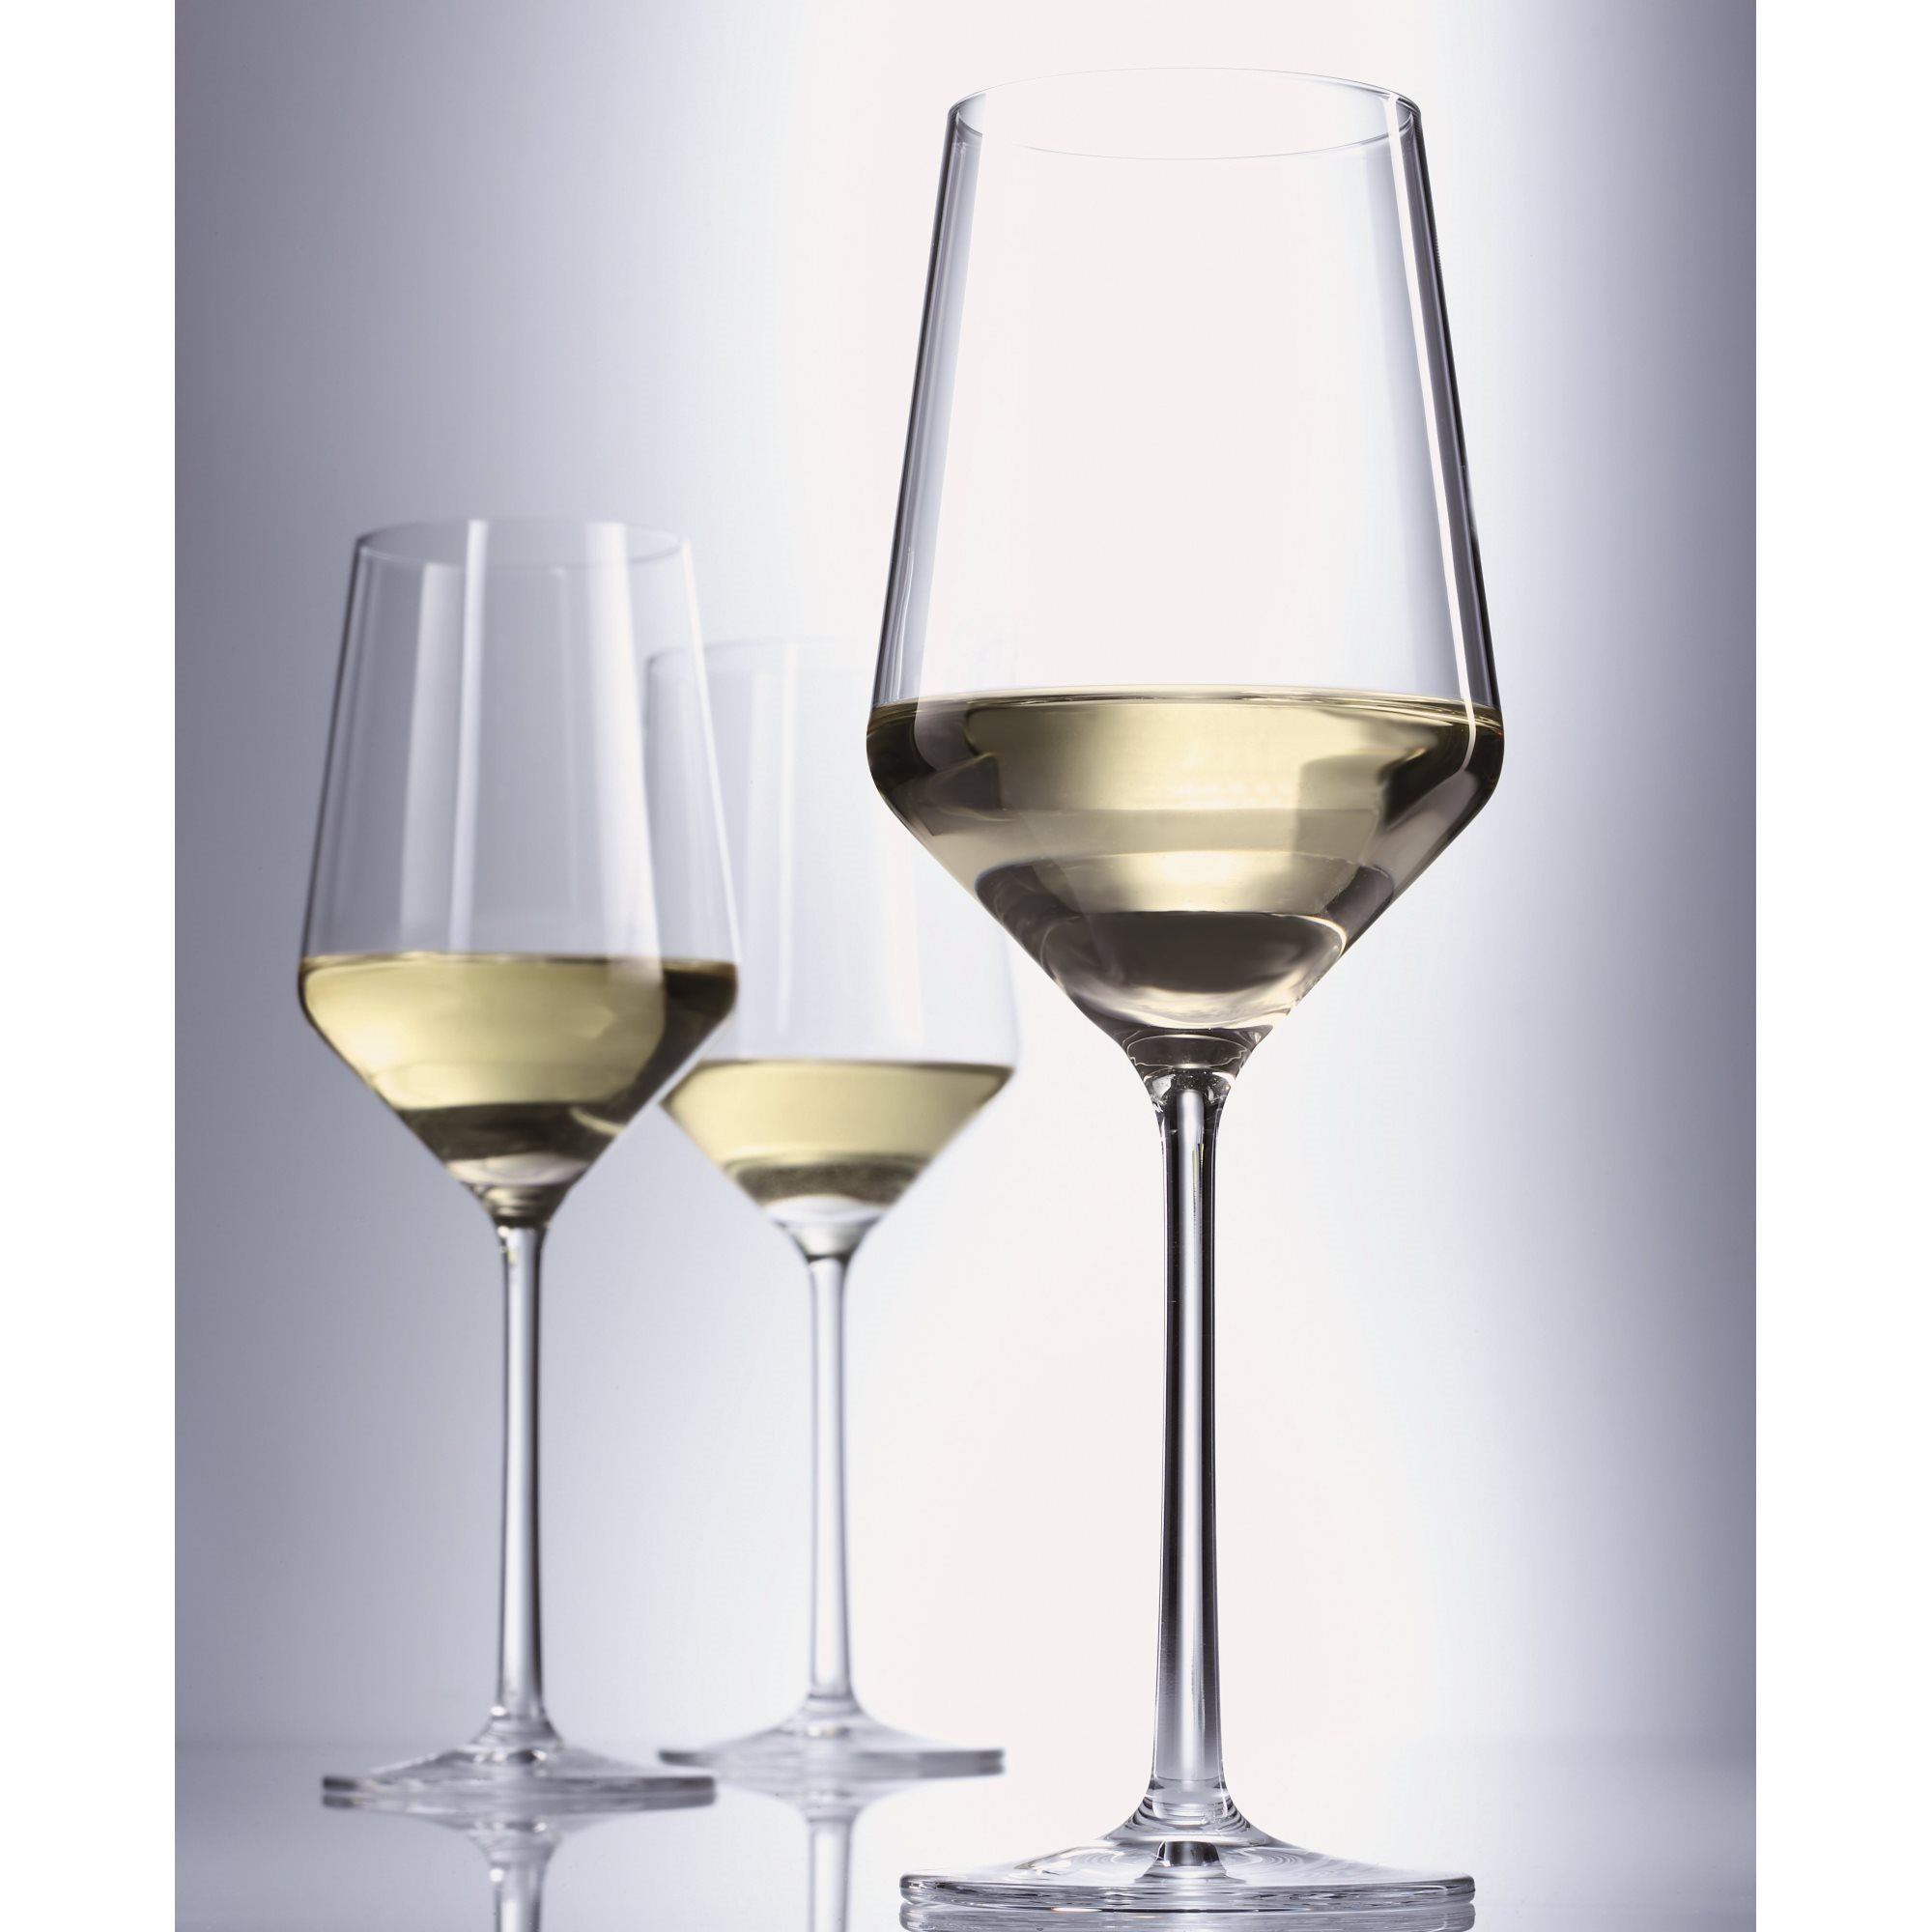 Schott Zwiesel Wine Glasses | Tritan Crystal | Sturdy Wine Glasses